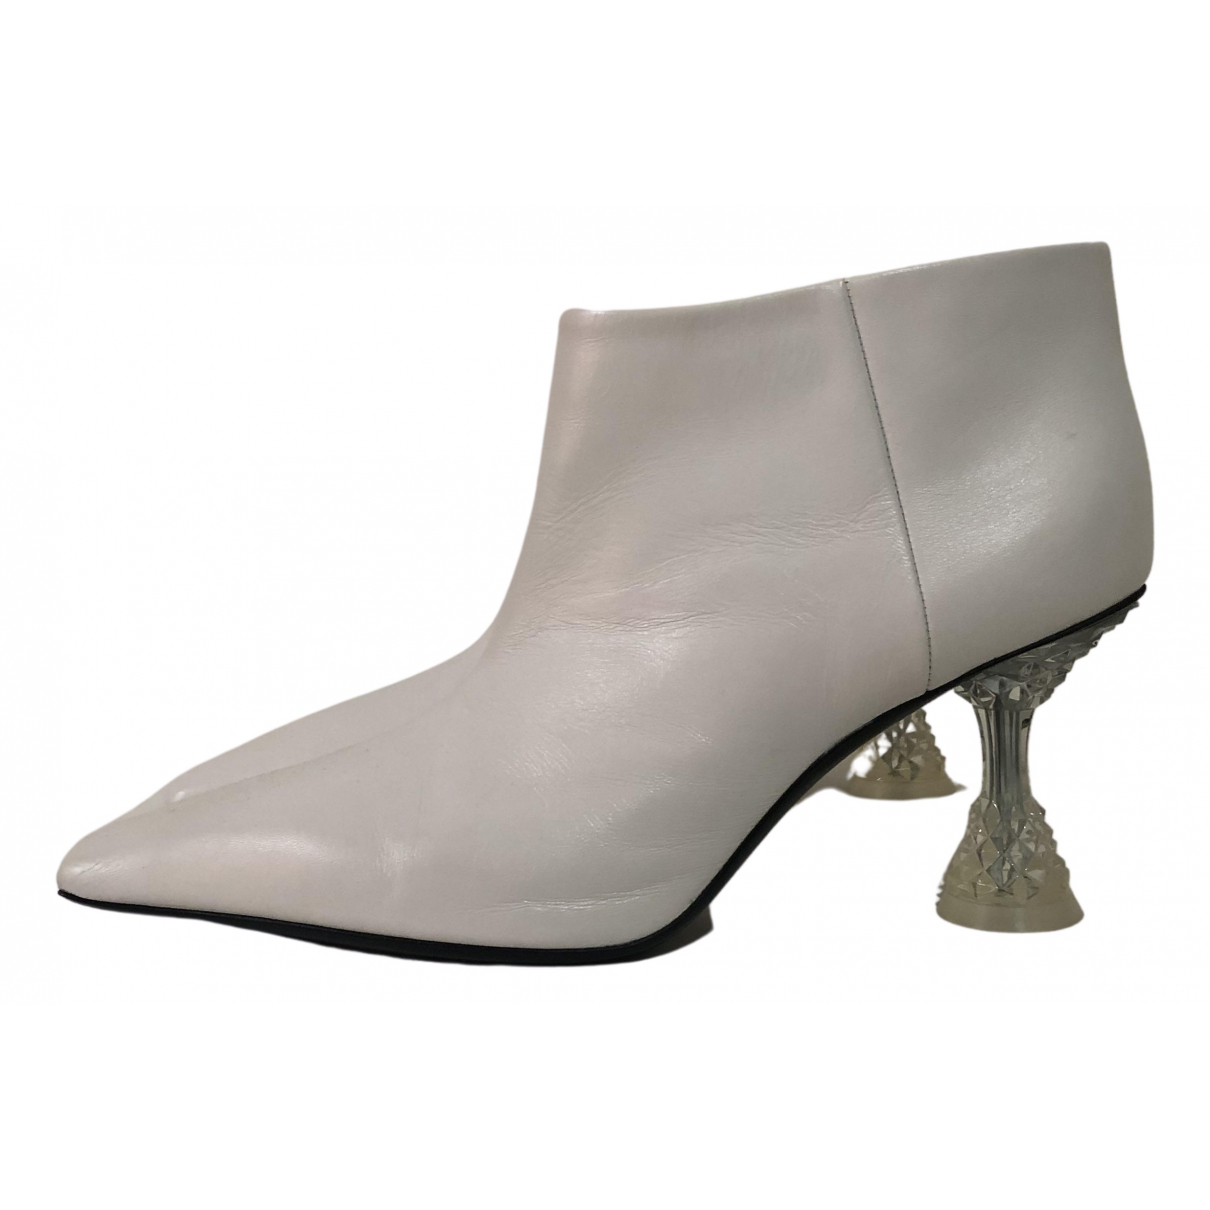 Celine N White Leather Ankle boots for Women 39.5 EU